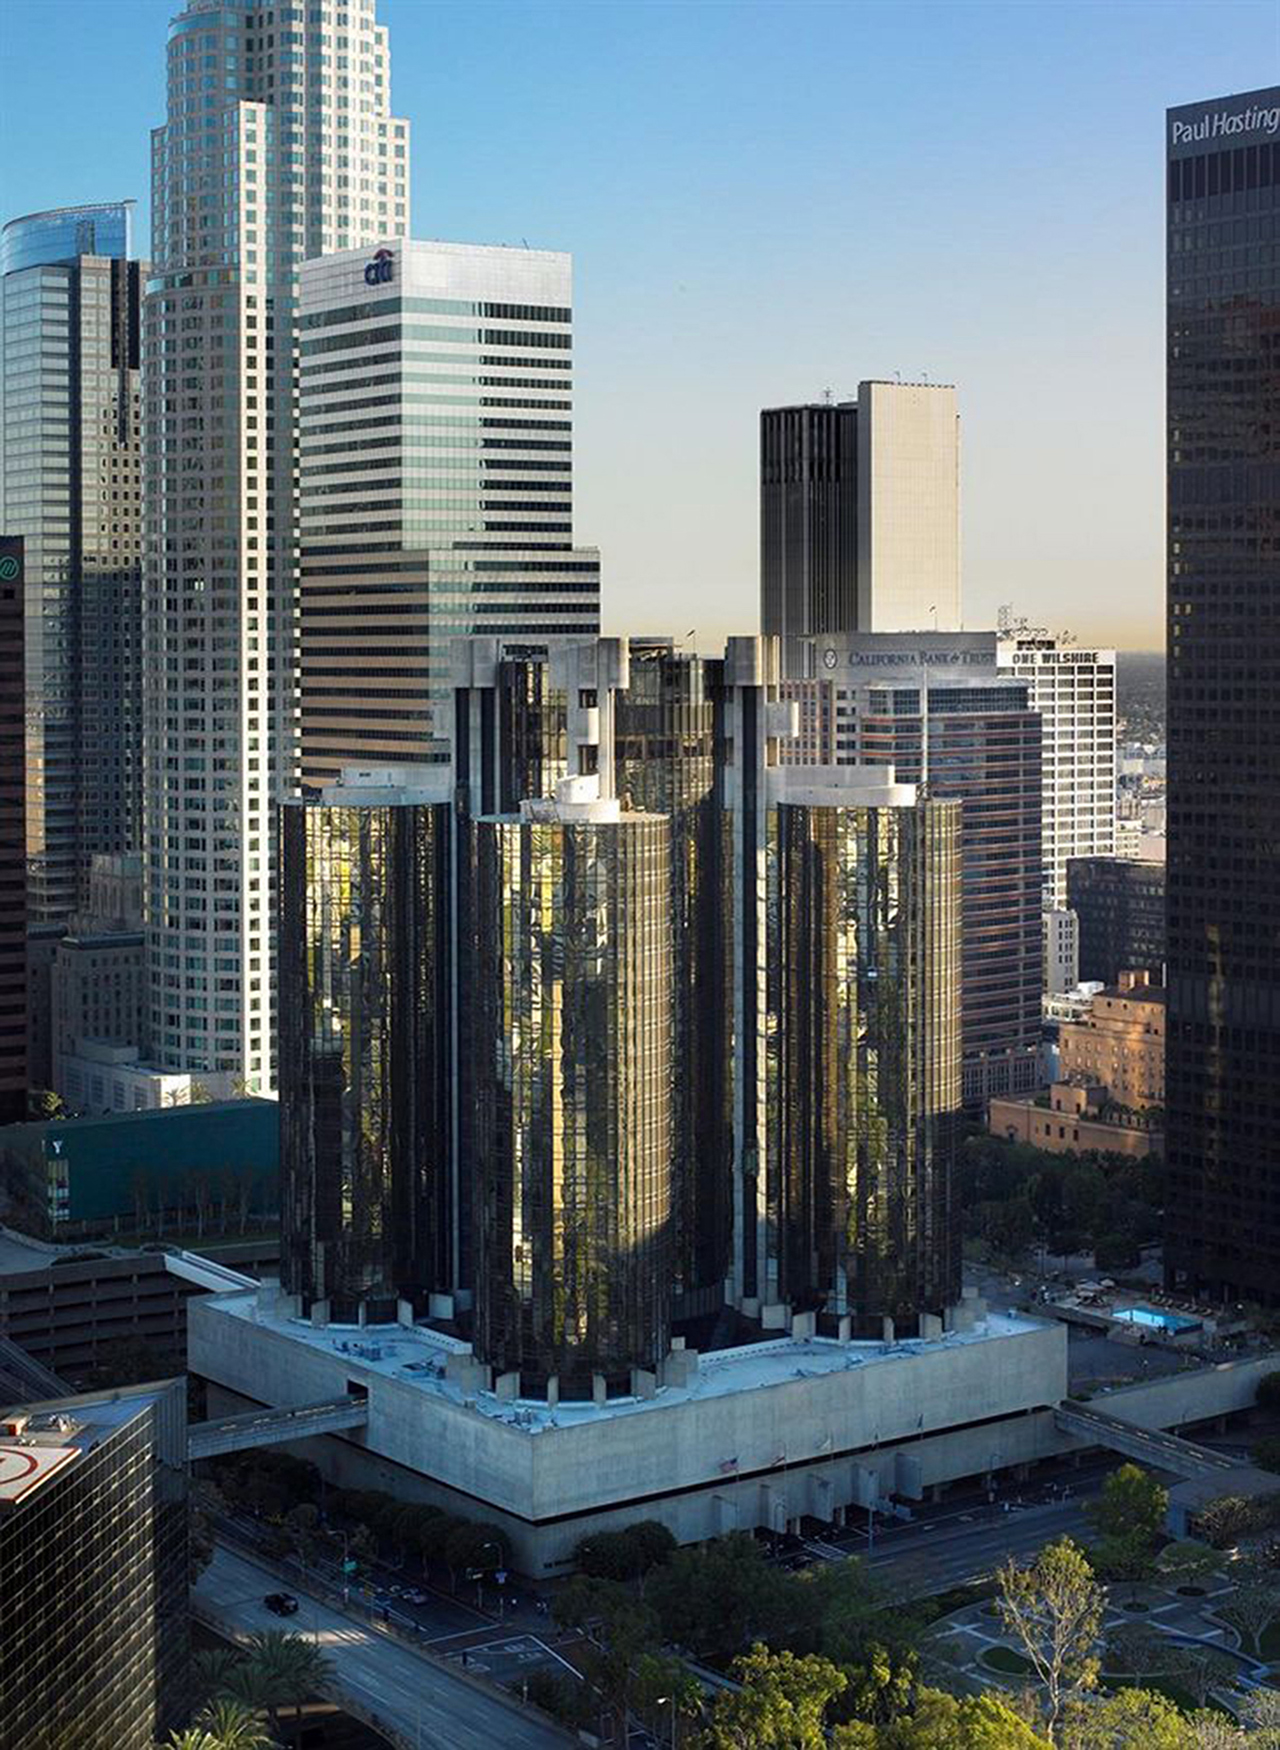 The Westin Bonaventure Hotel & Suites, Downtown Los Angeles (click to enlarge)